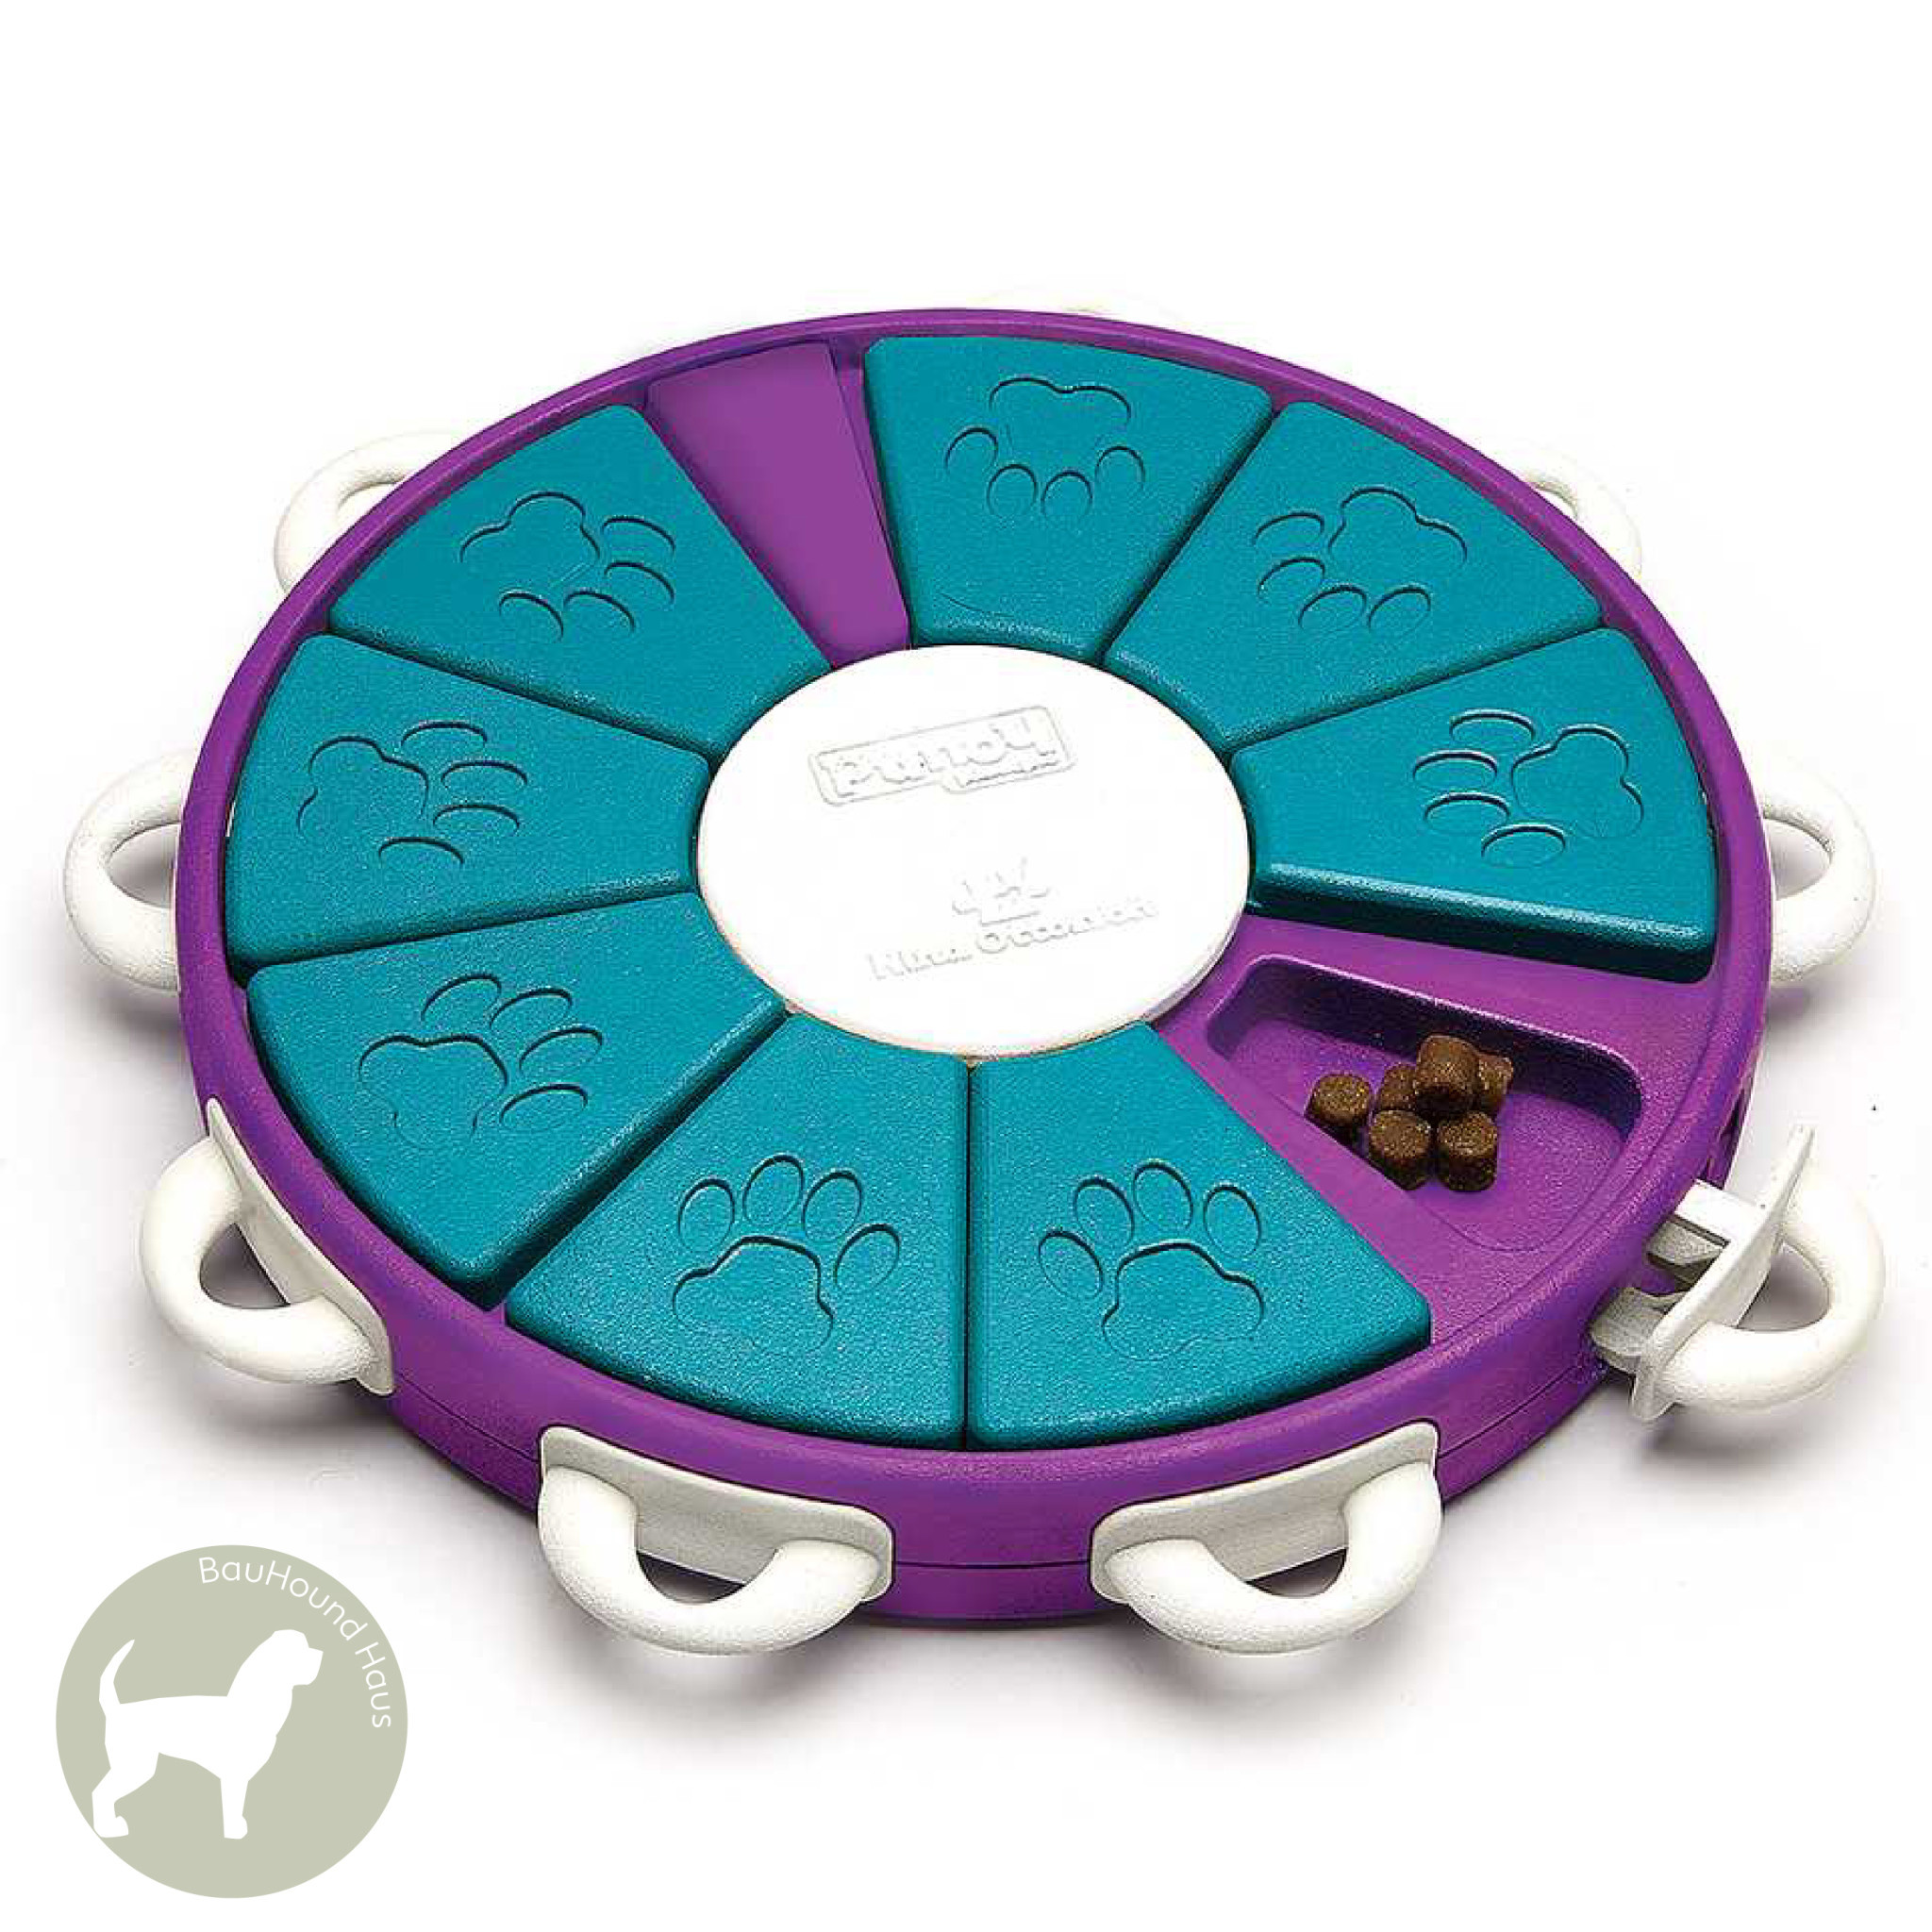 Outward Hound Outward Hound Nina Ottosson Dog Twister Puzzle